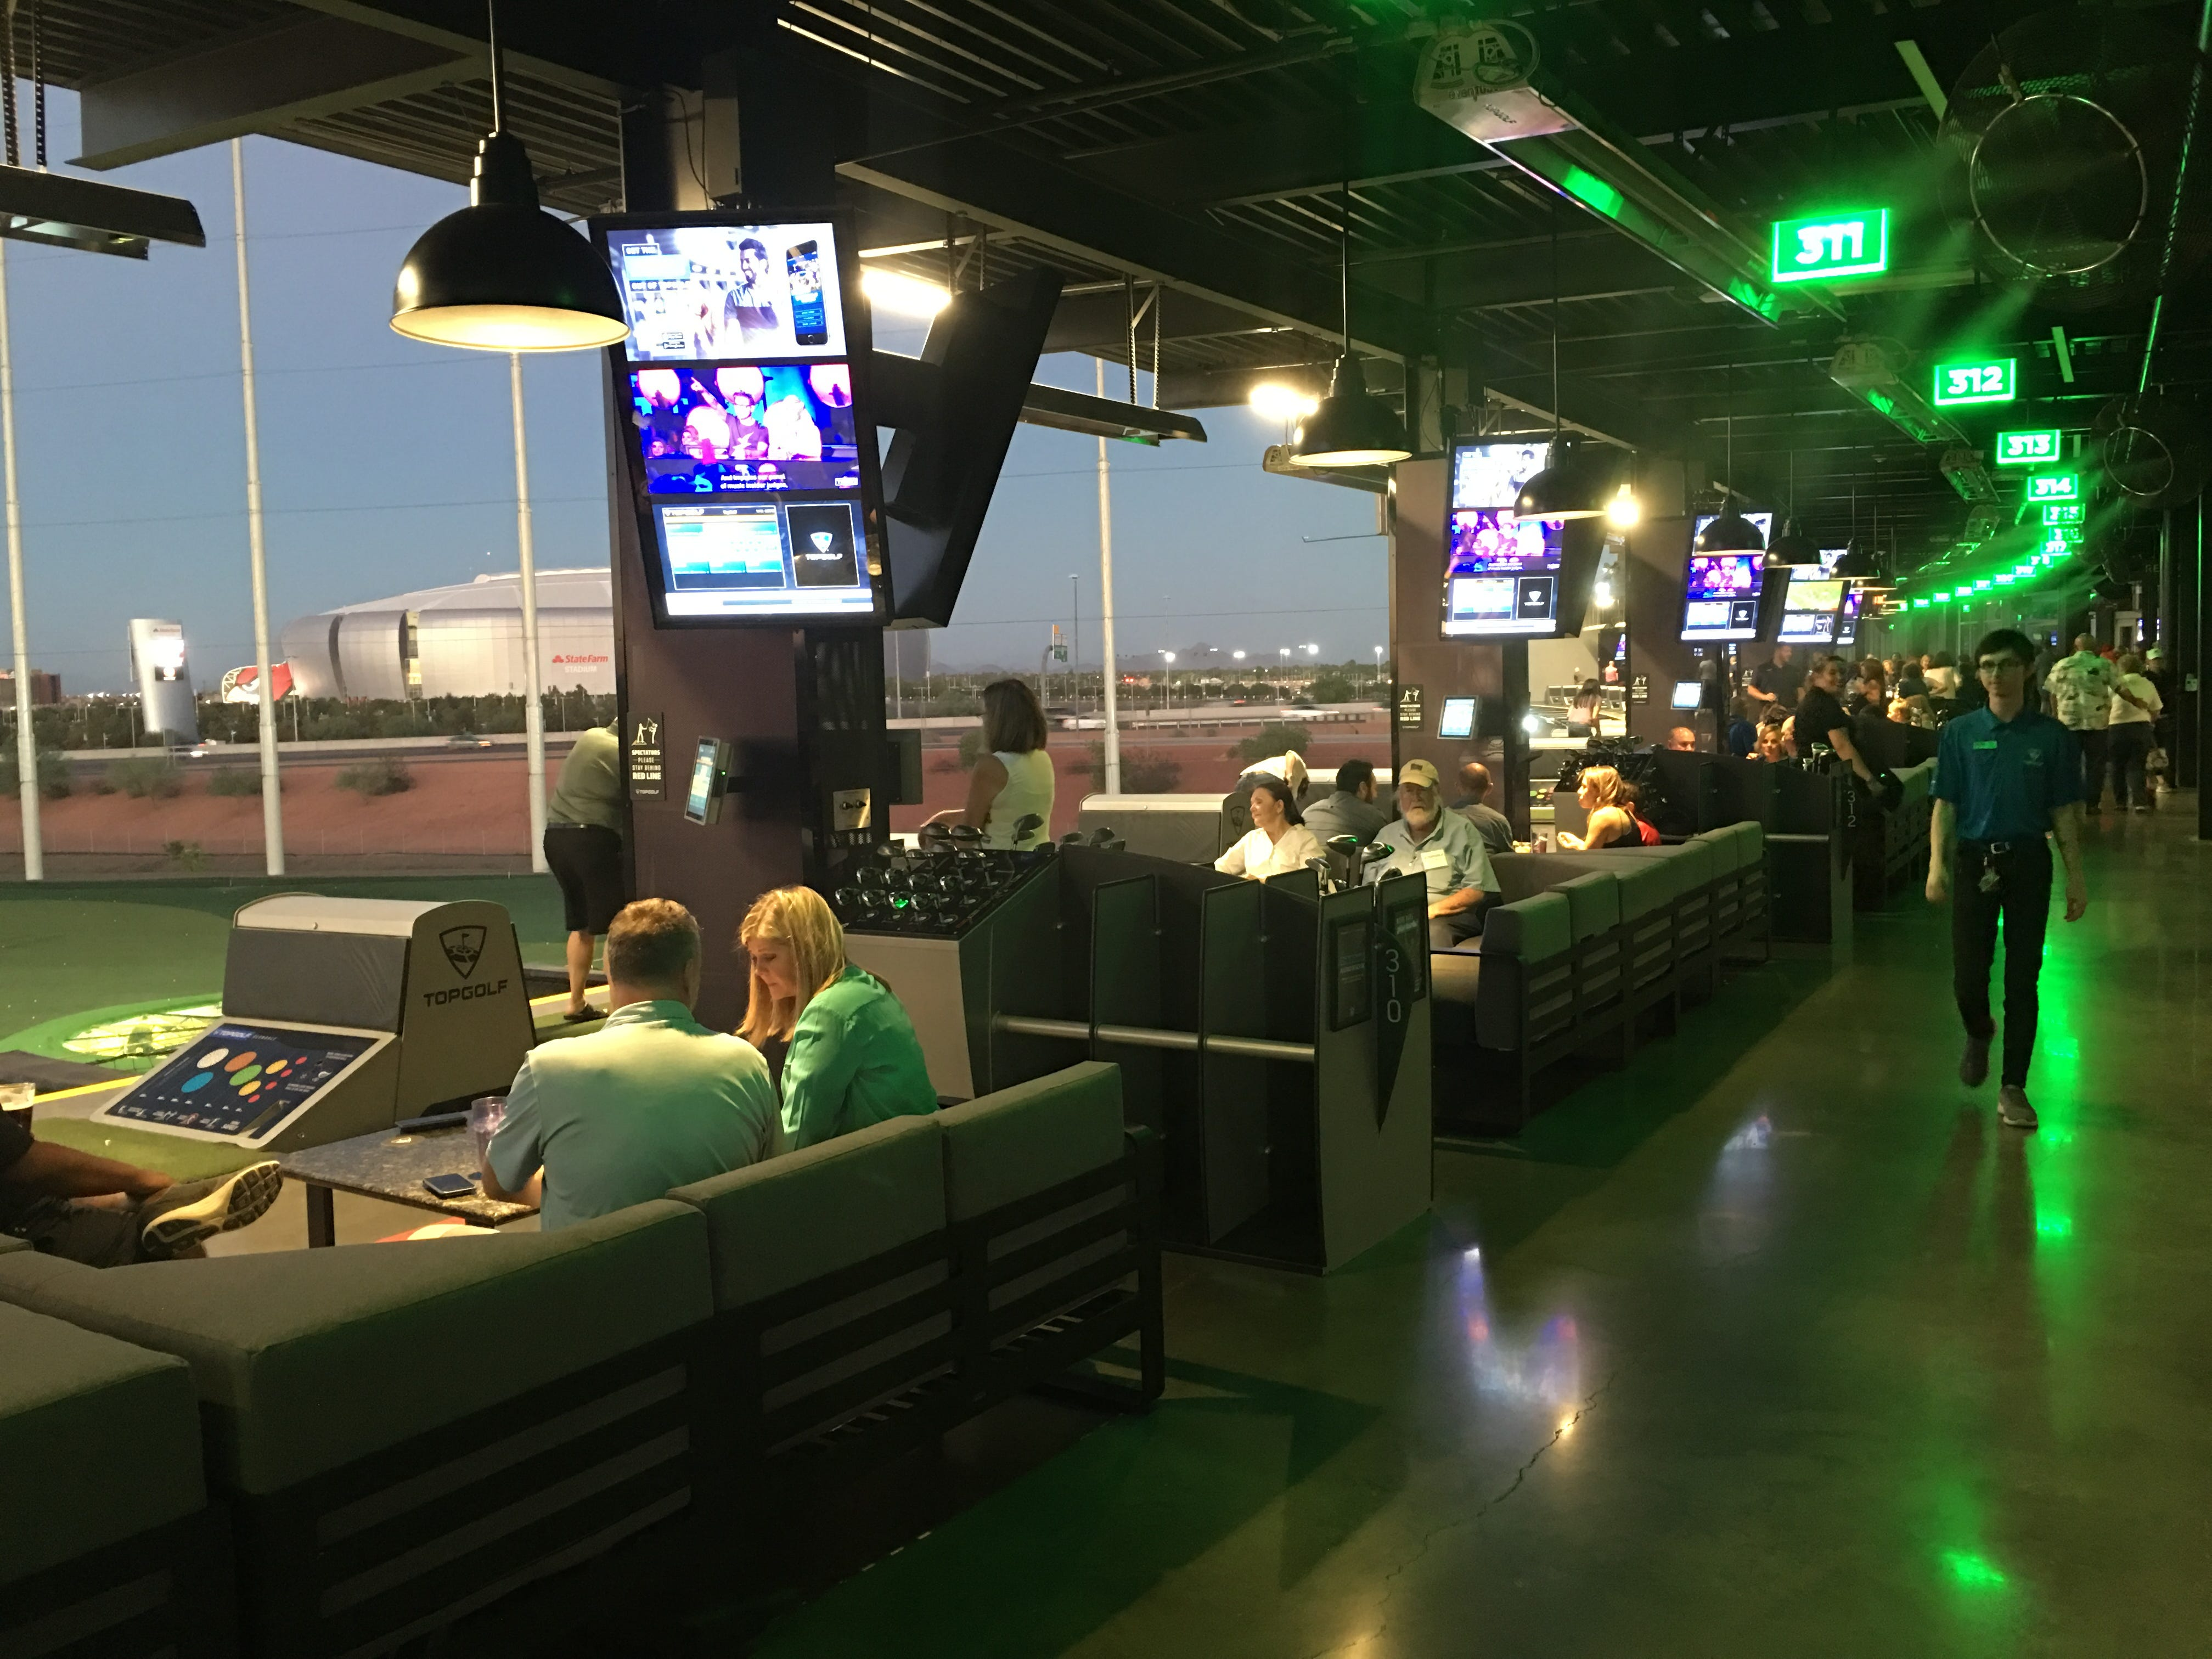 Guests attend a tour, Sept. 12, 2018, of Topgolf Glendale, the company's newest Valley location, which is scheduled to open in September near State Farm Stadium.